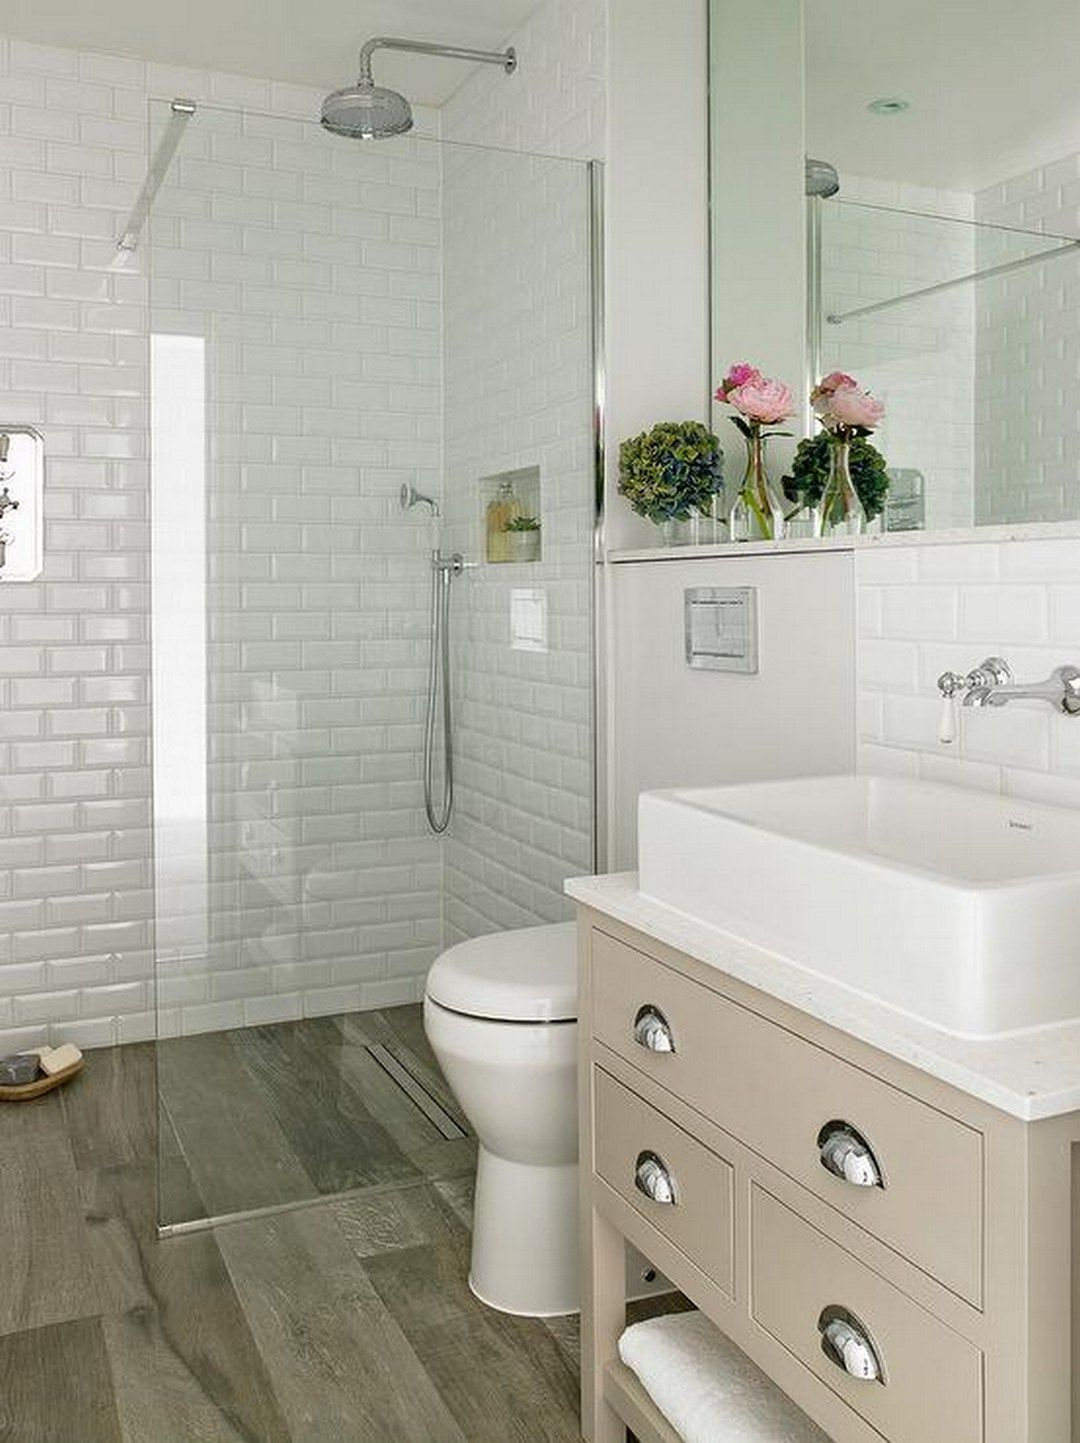 99 small master bathroom makeover ideas on a budget 56 Small bathroom makeovers